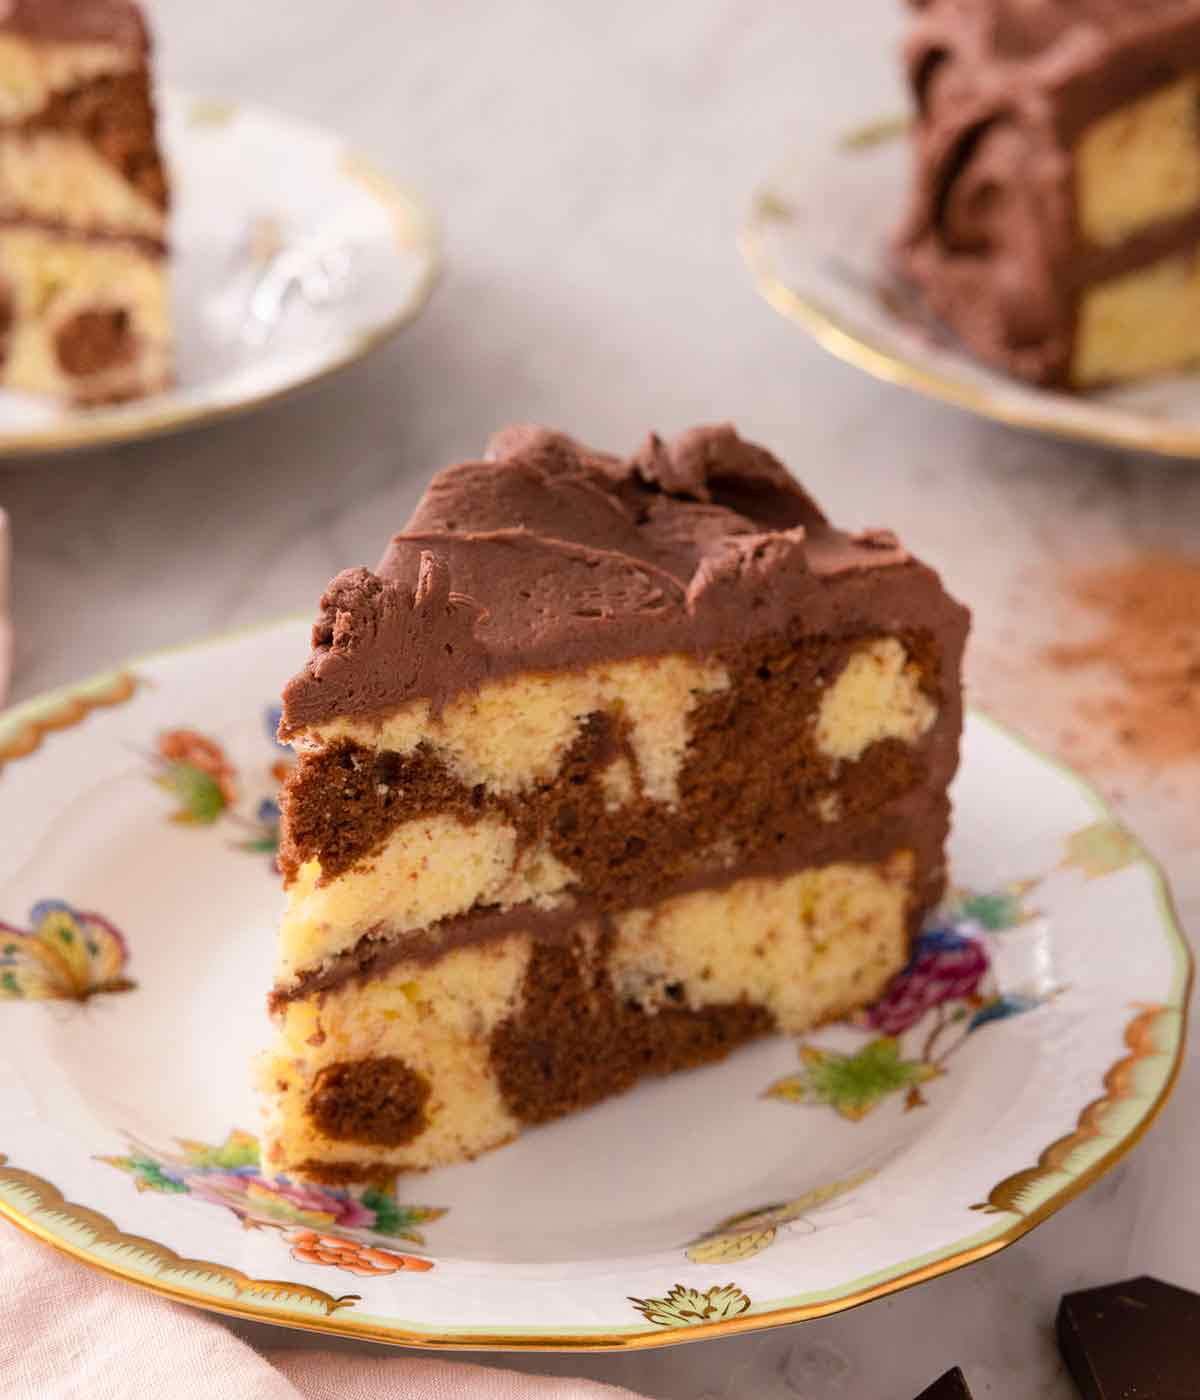 A slice of two tiered marble cake with chocolate buttercream frosting on a plate.